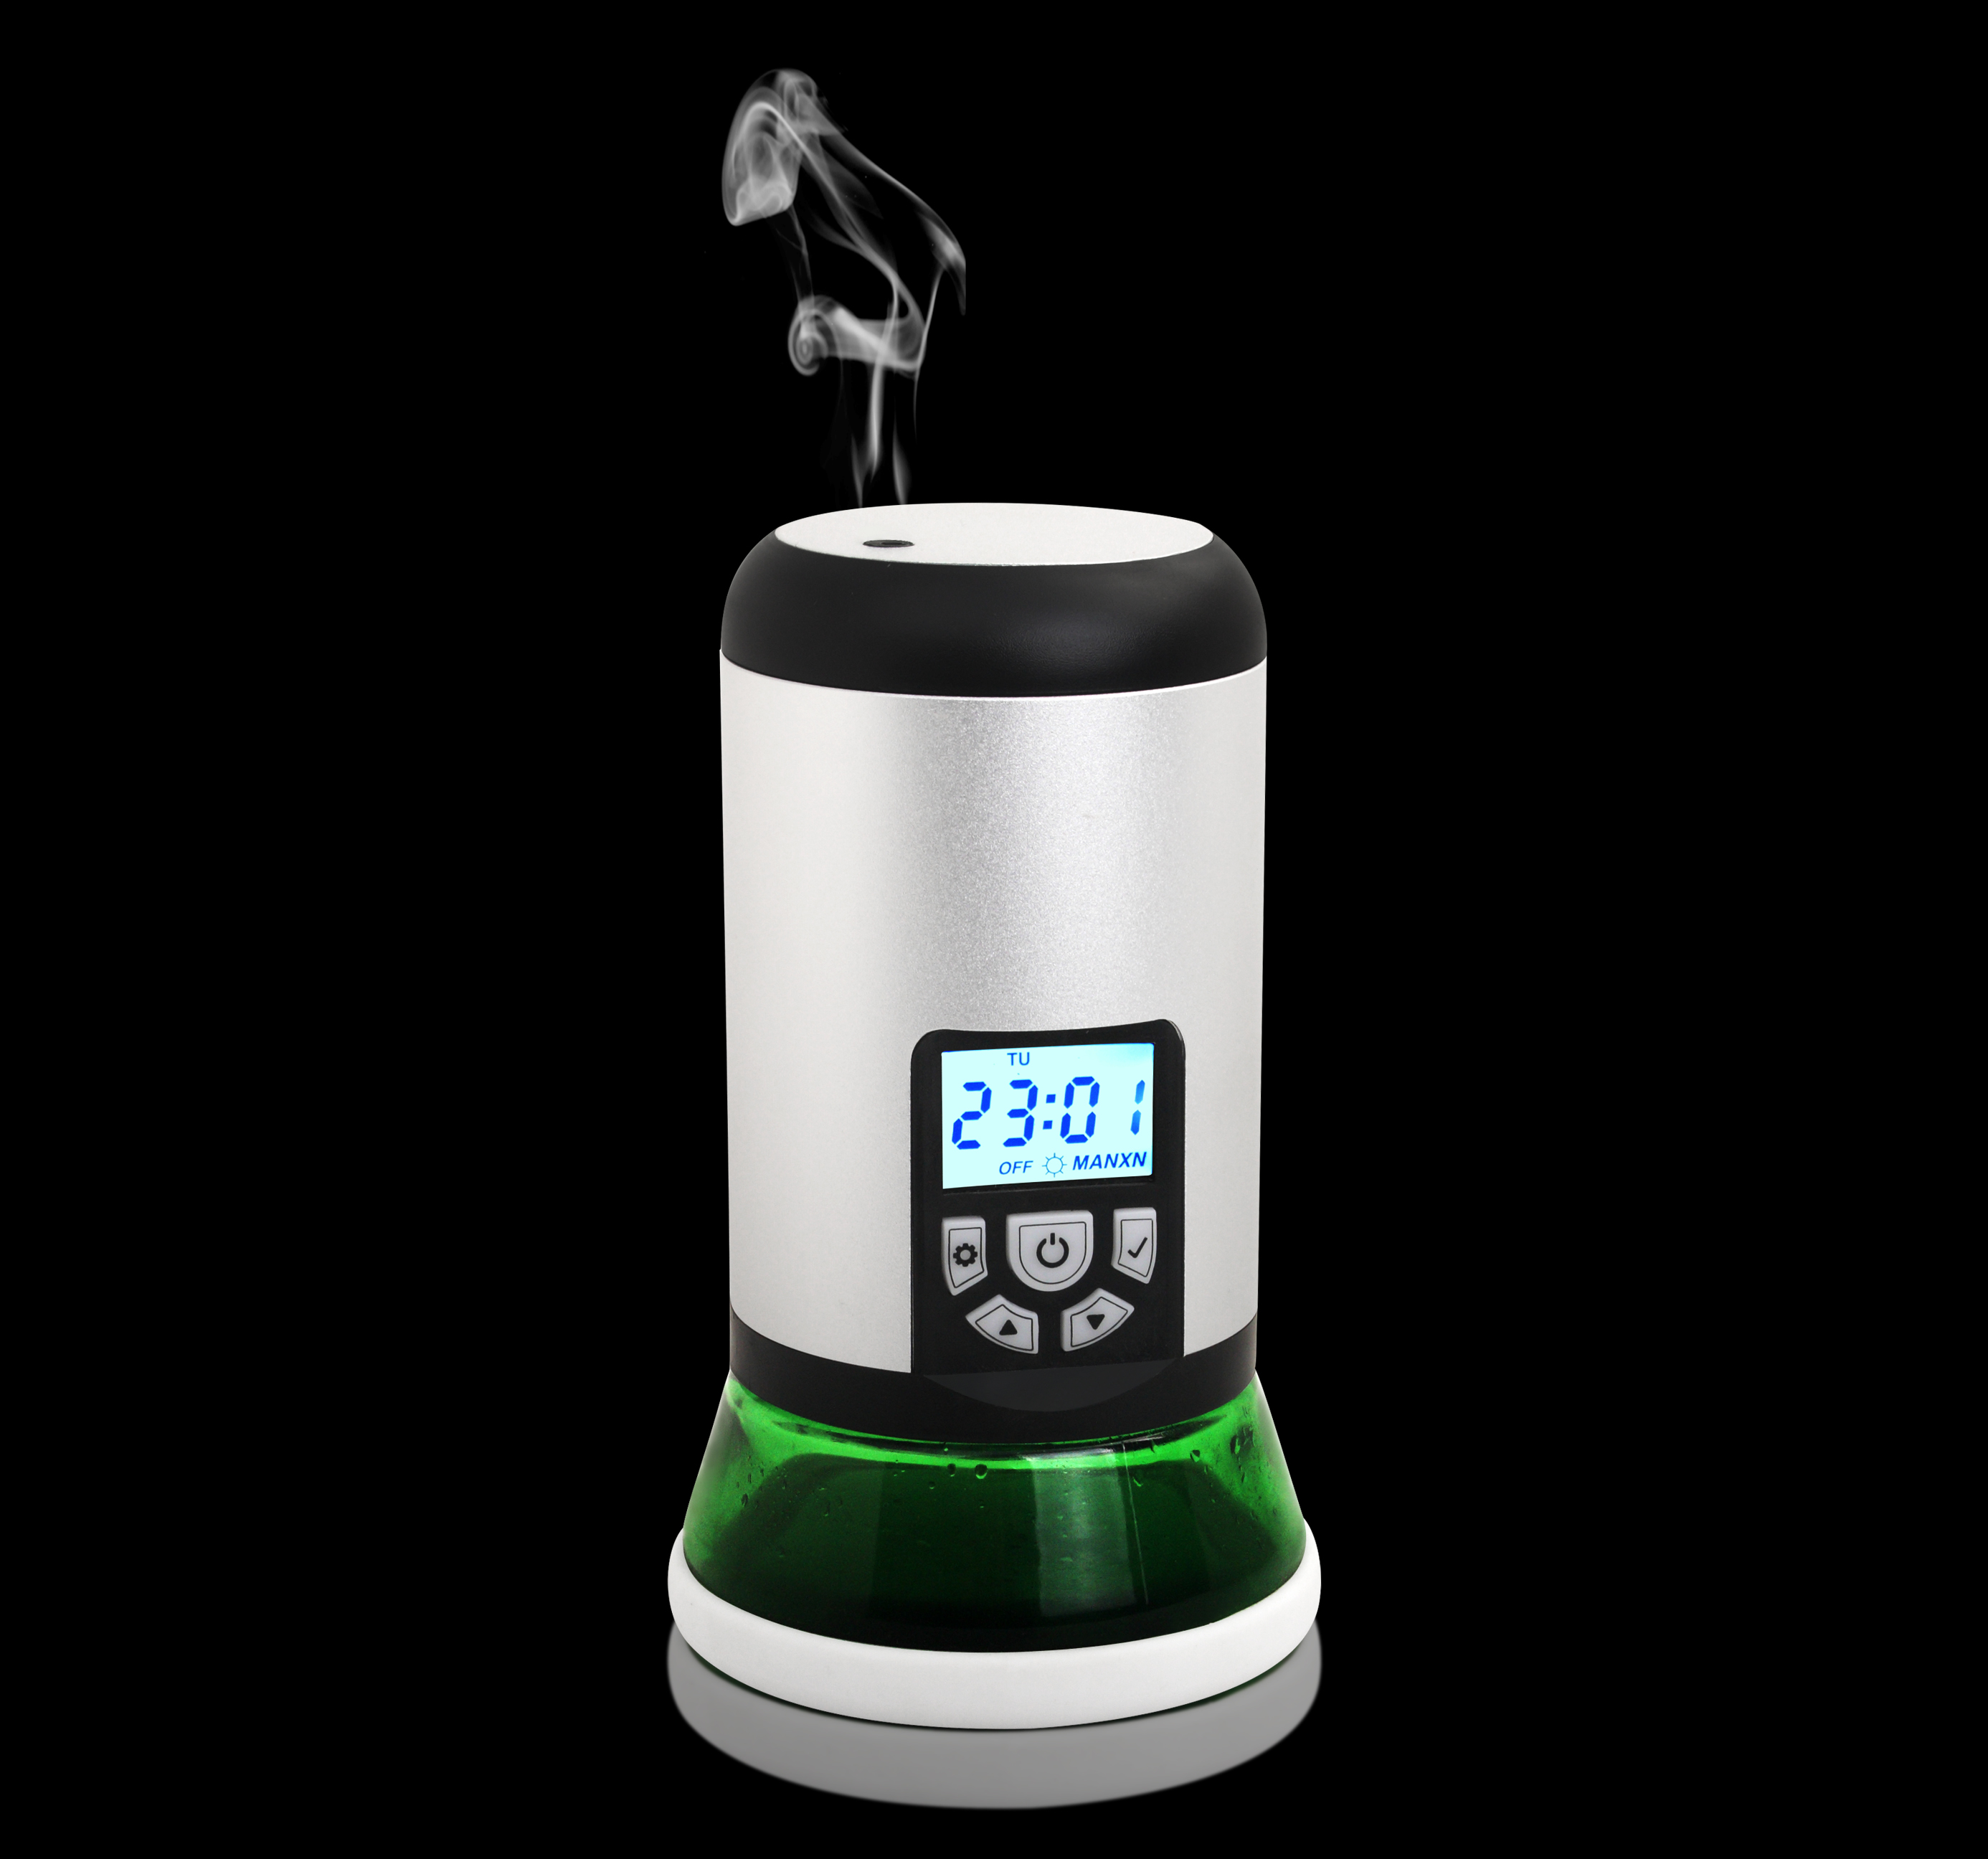 Intelligent Aroma Diffuser Stainless Steel Automatic Aerosol Diffuser Machine Household Perfume Fragrance Diffuser Hotel Lobby Bar Club Toilet